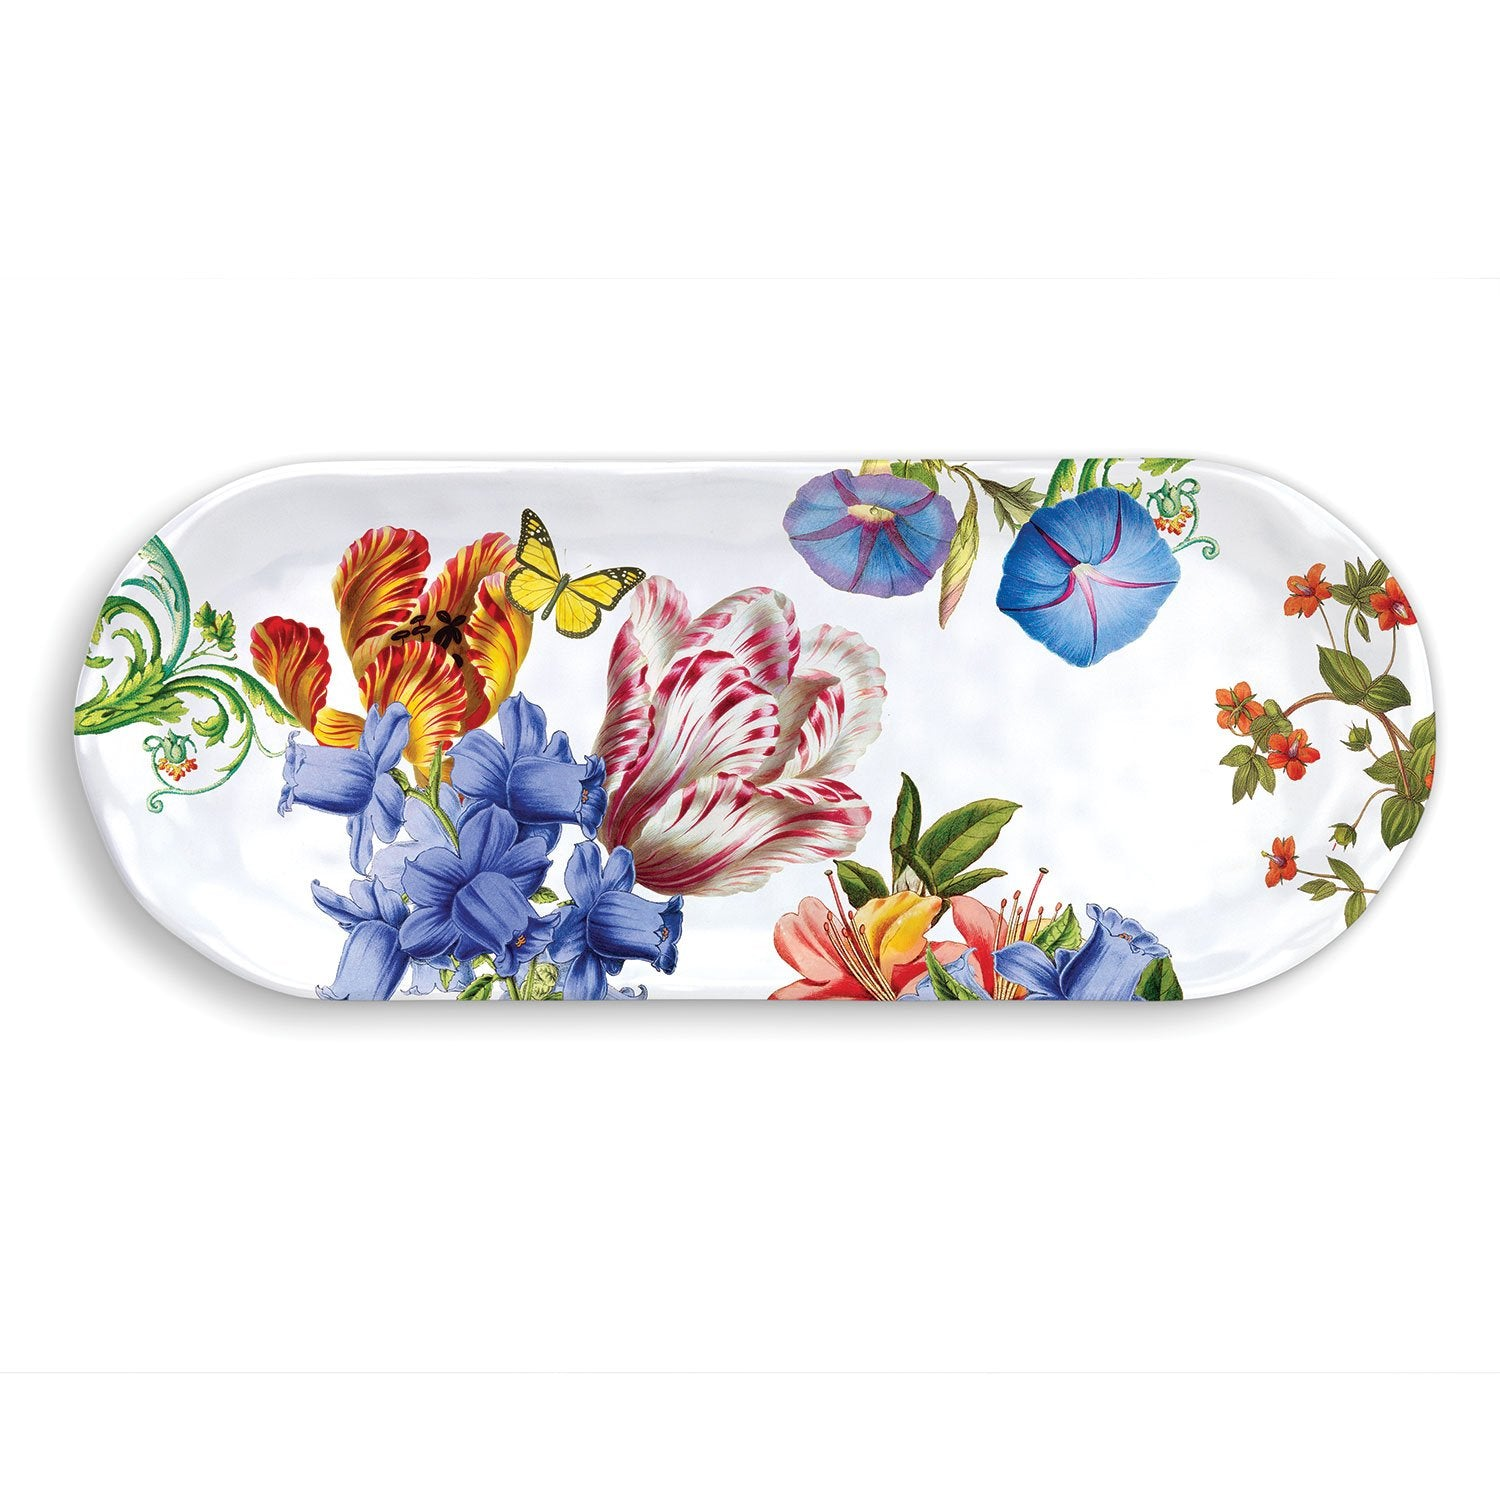 Summer Days Melamine Serveware Accent Tray